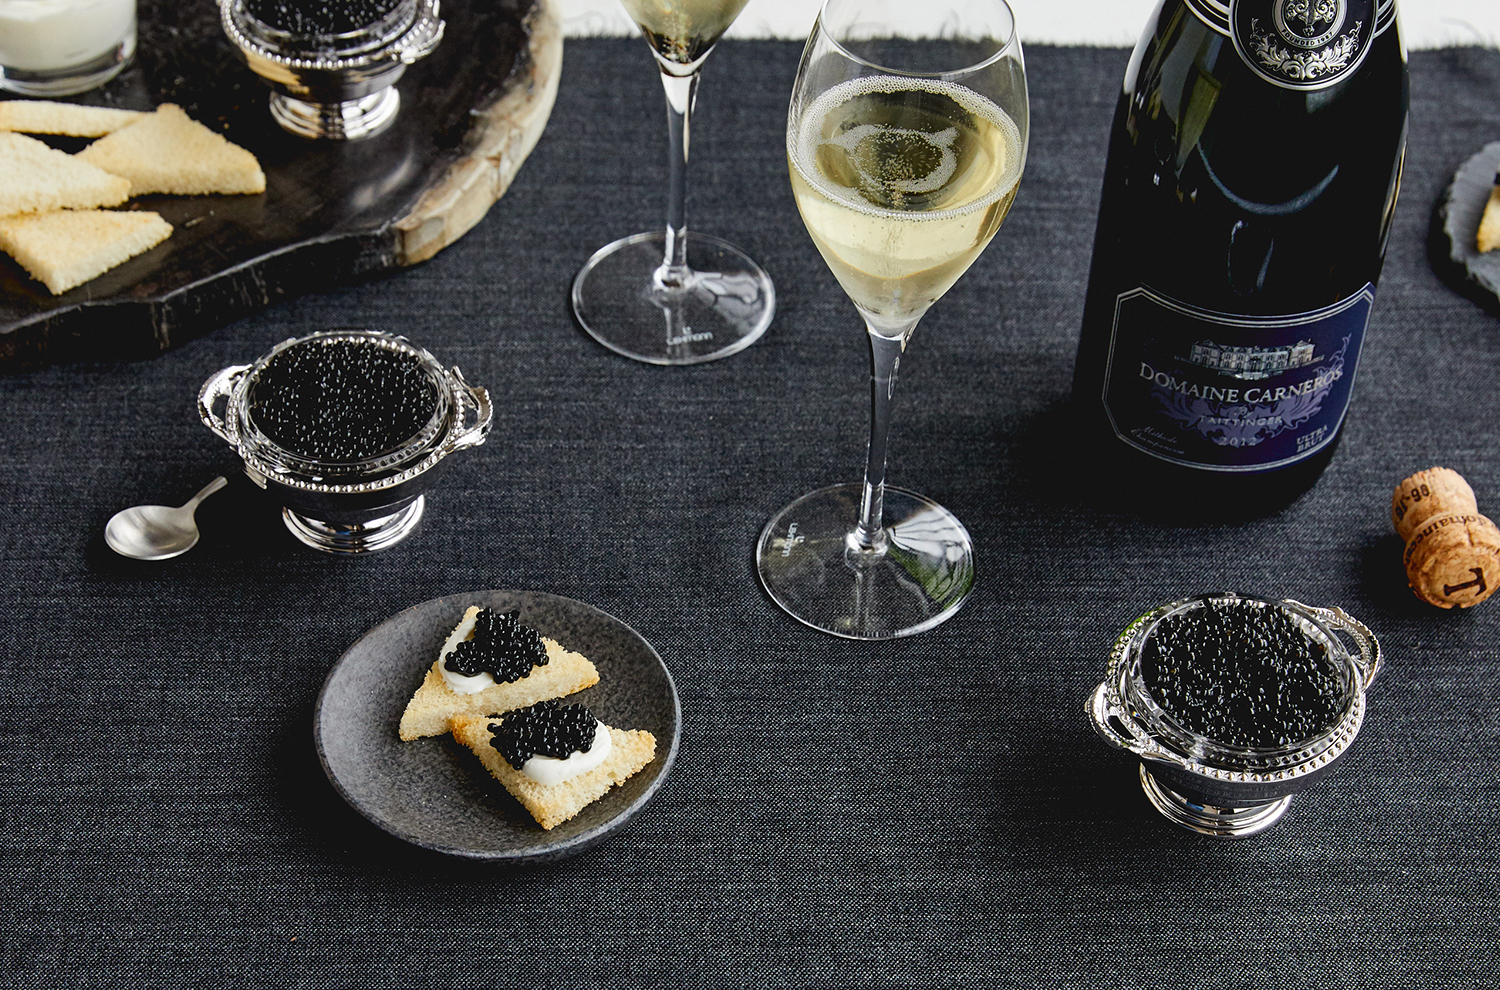 Caviar and sparkling wine event